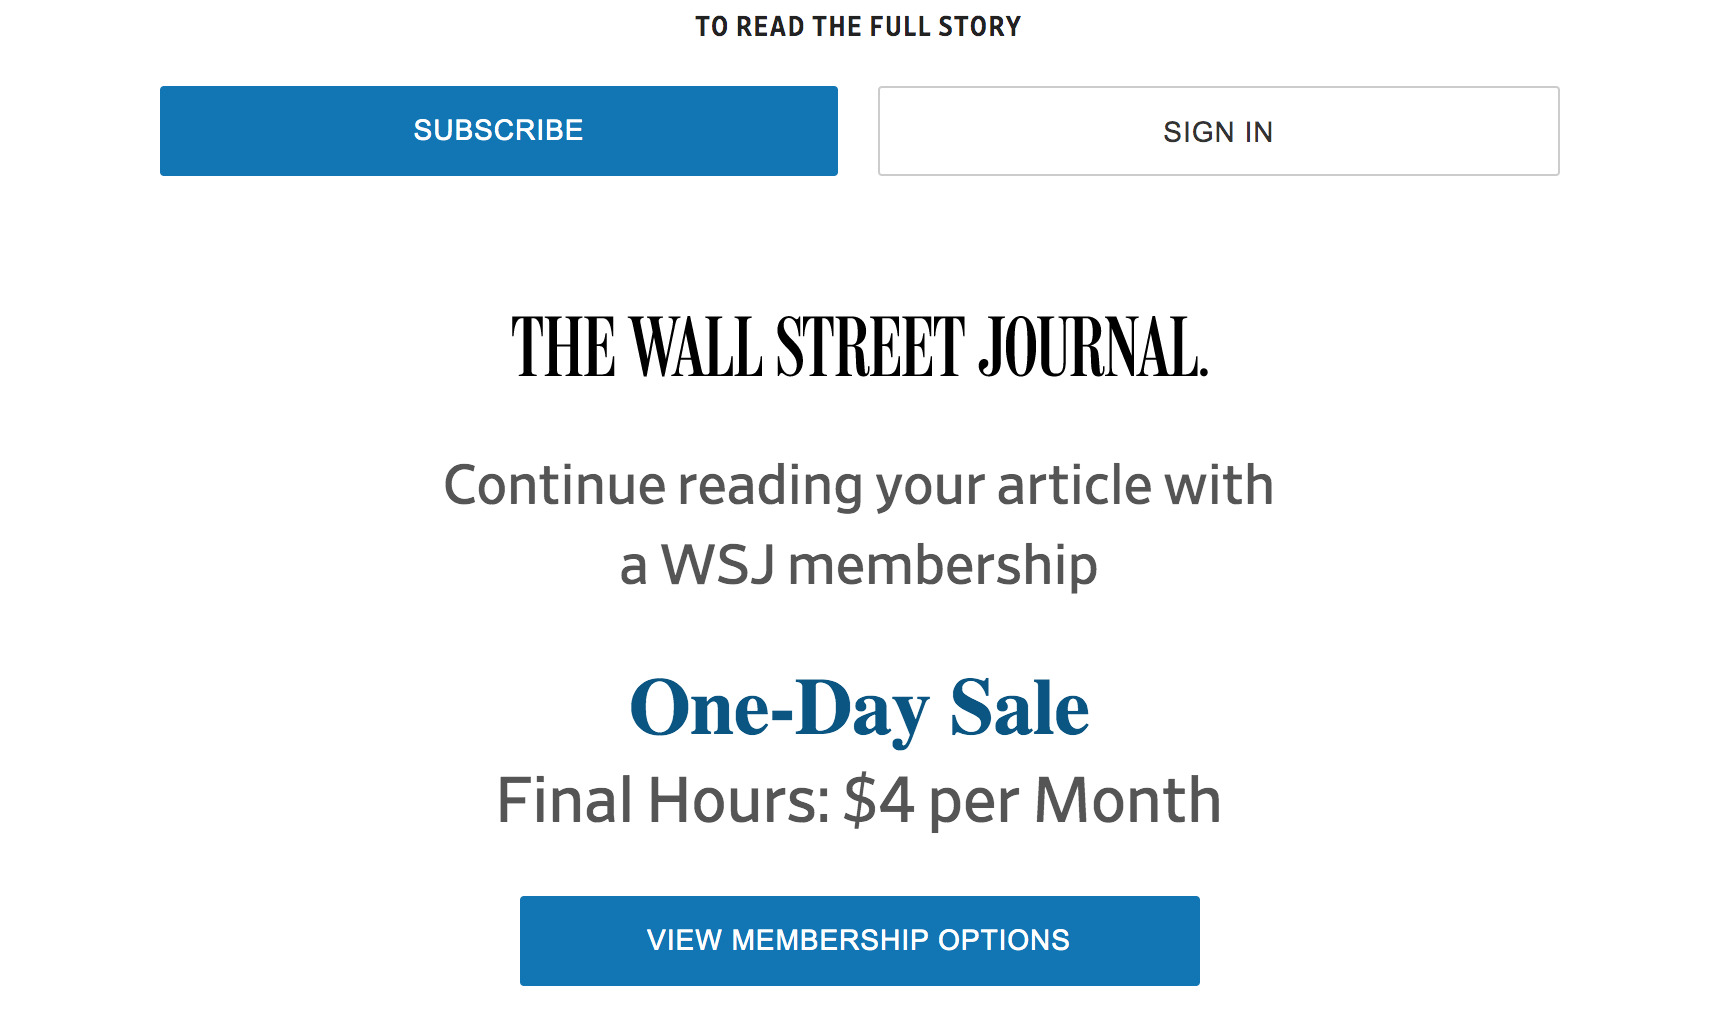 The WSJ is a client of Piano, which published the media subscription trends report